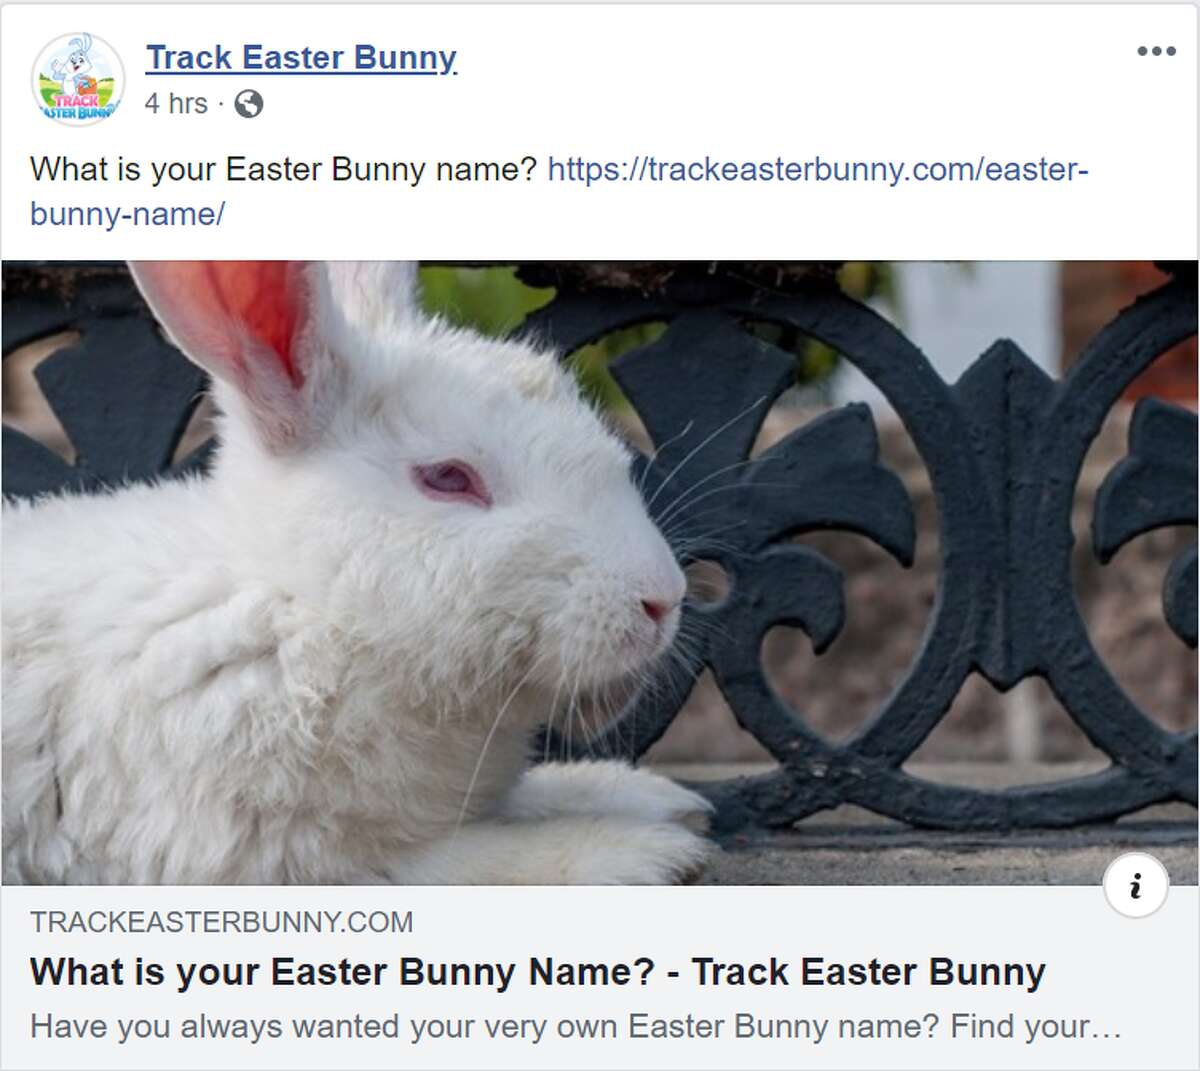 Play fun Easter games Play fun Easter games like finding out what your Easter Bunny name is through the Track Bunny website.